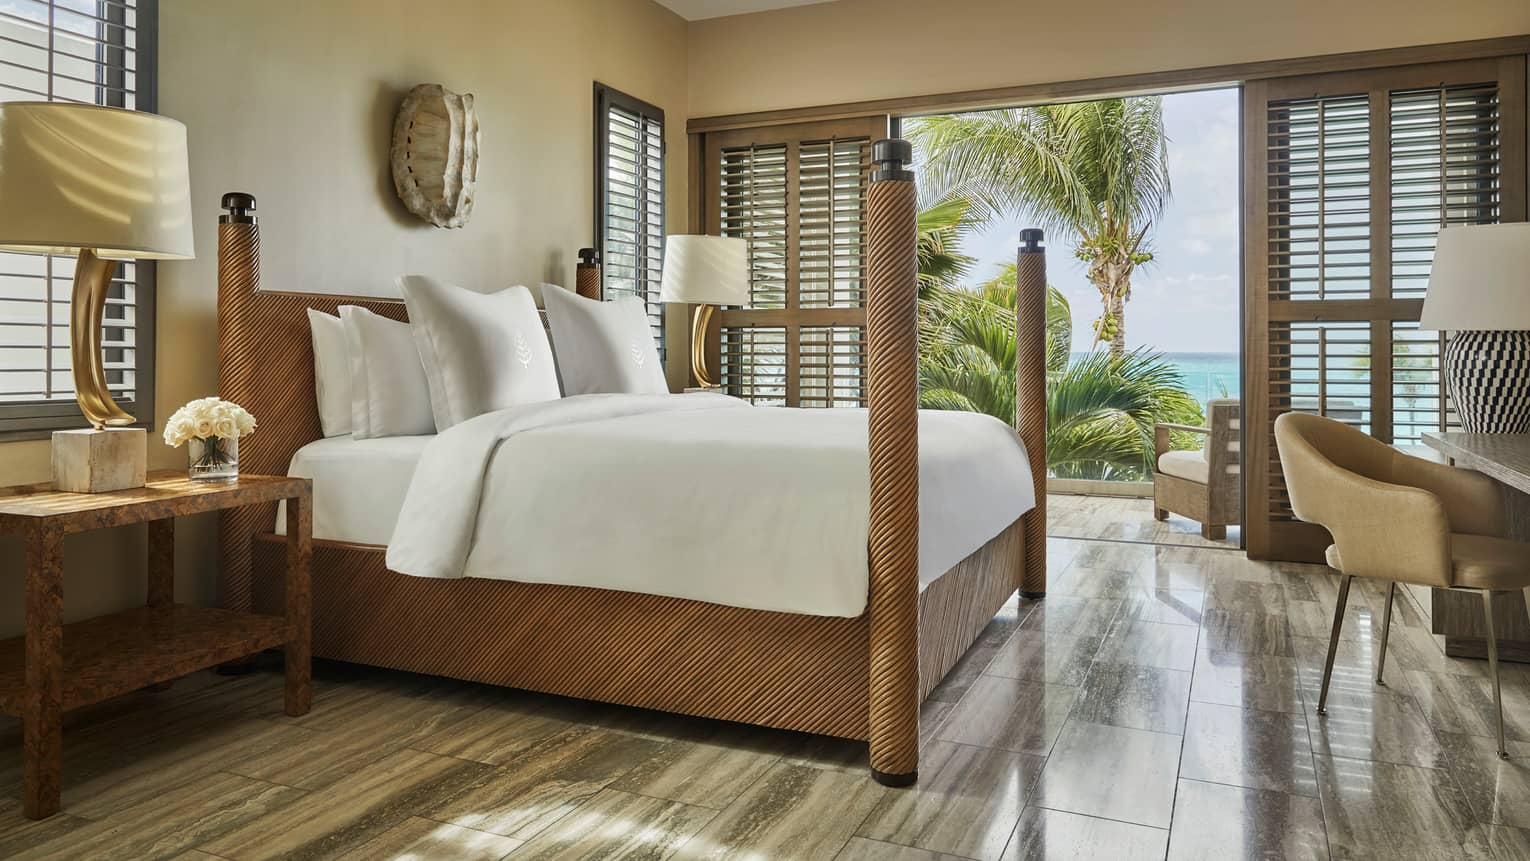 Four-bedroom Beachfront Villa wood poster bed, desk, sculpture on wall, open patio shutters to palms, ocean view